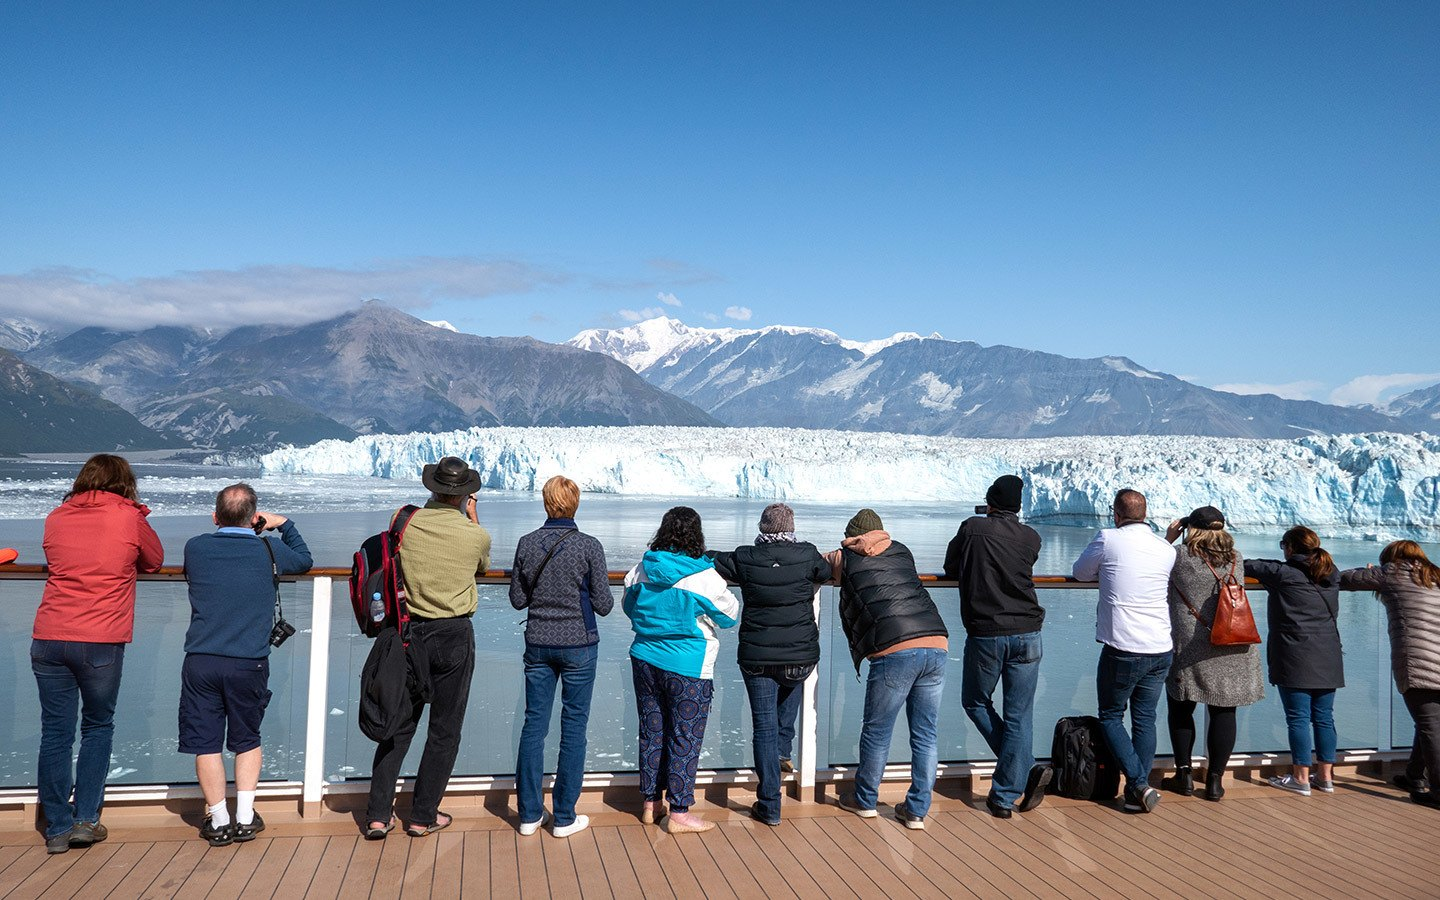 Cruise ship guests on deck at the Hubbard Glacier